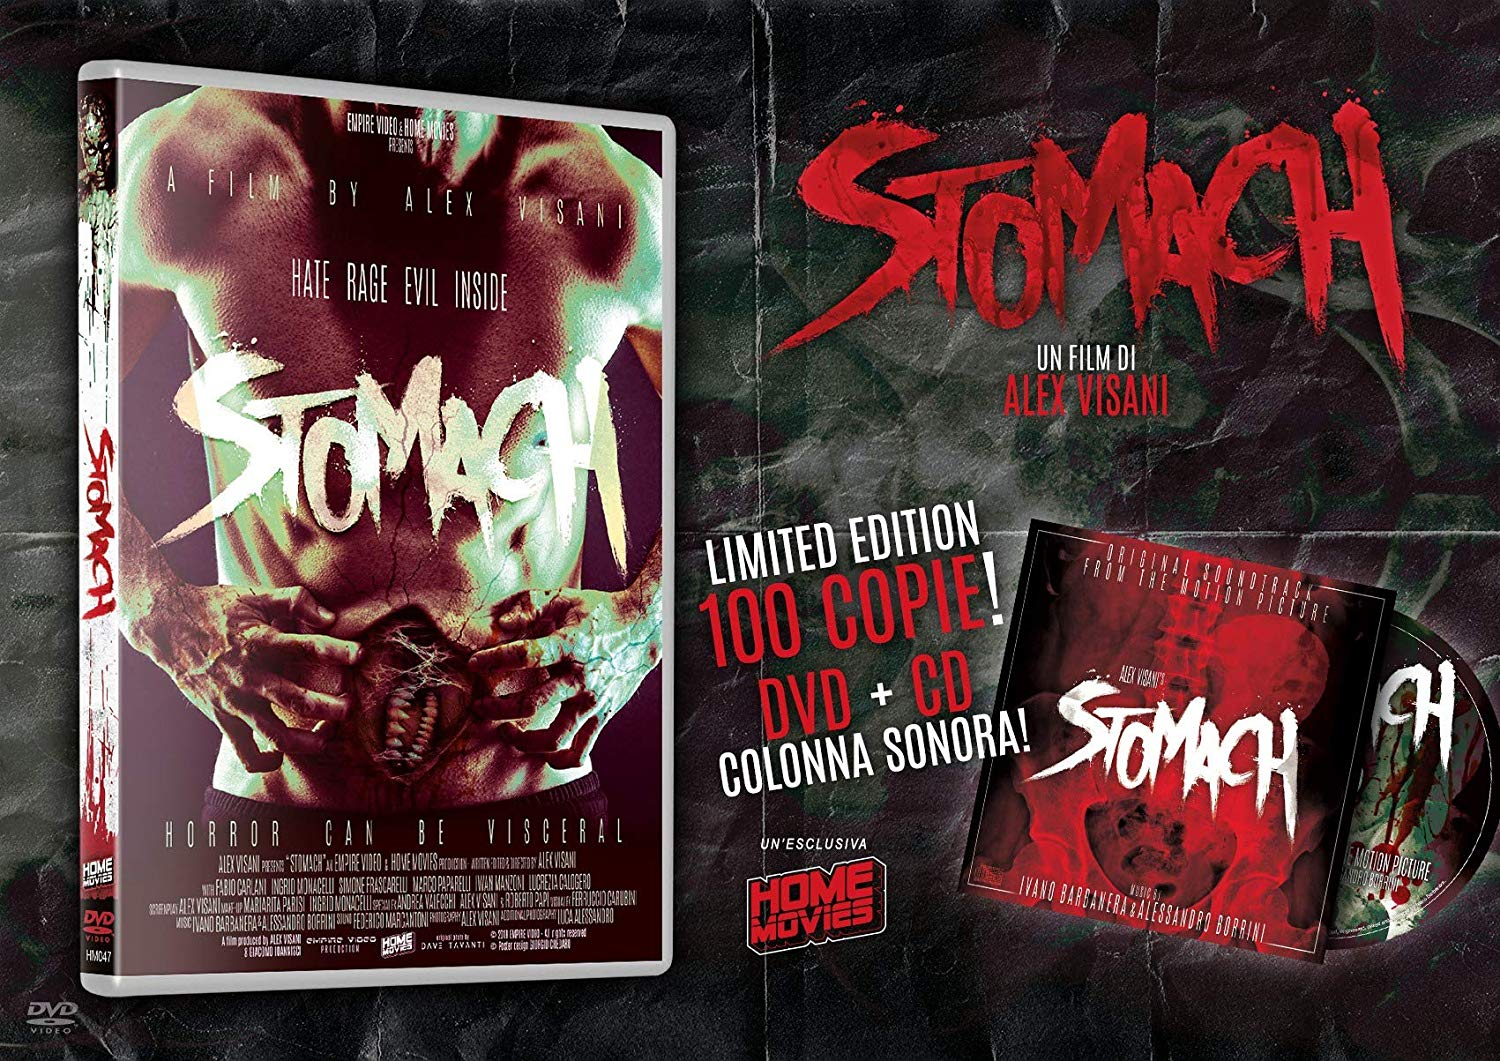 COF.STOMACH - LIMITED EDITION 100CP + CD SOUNDTRACK (DVD)